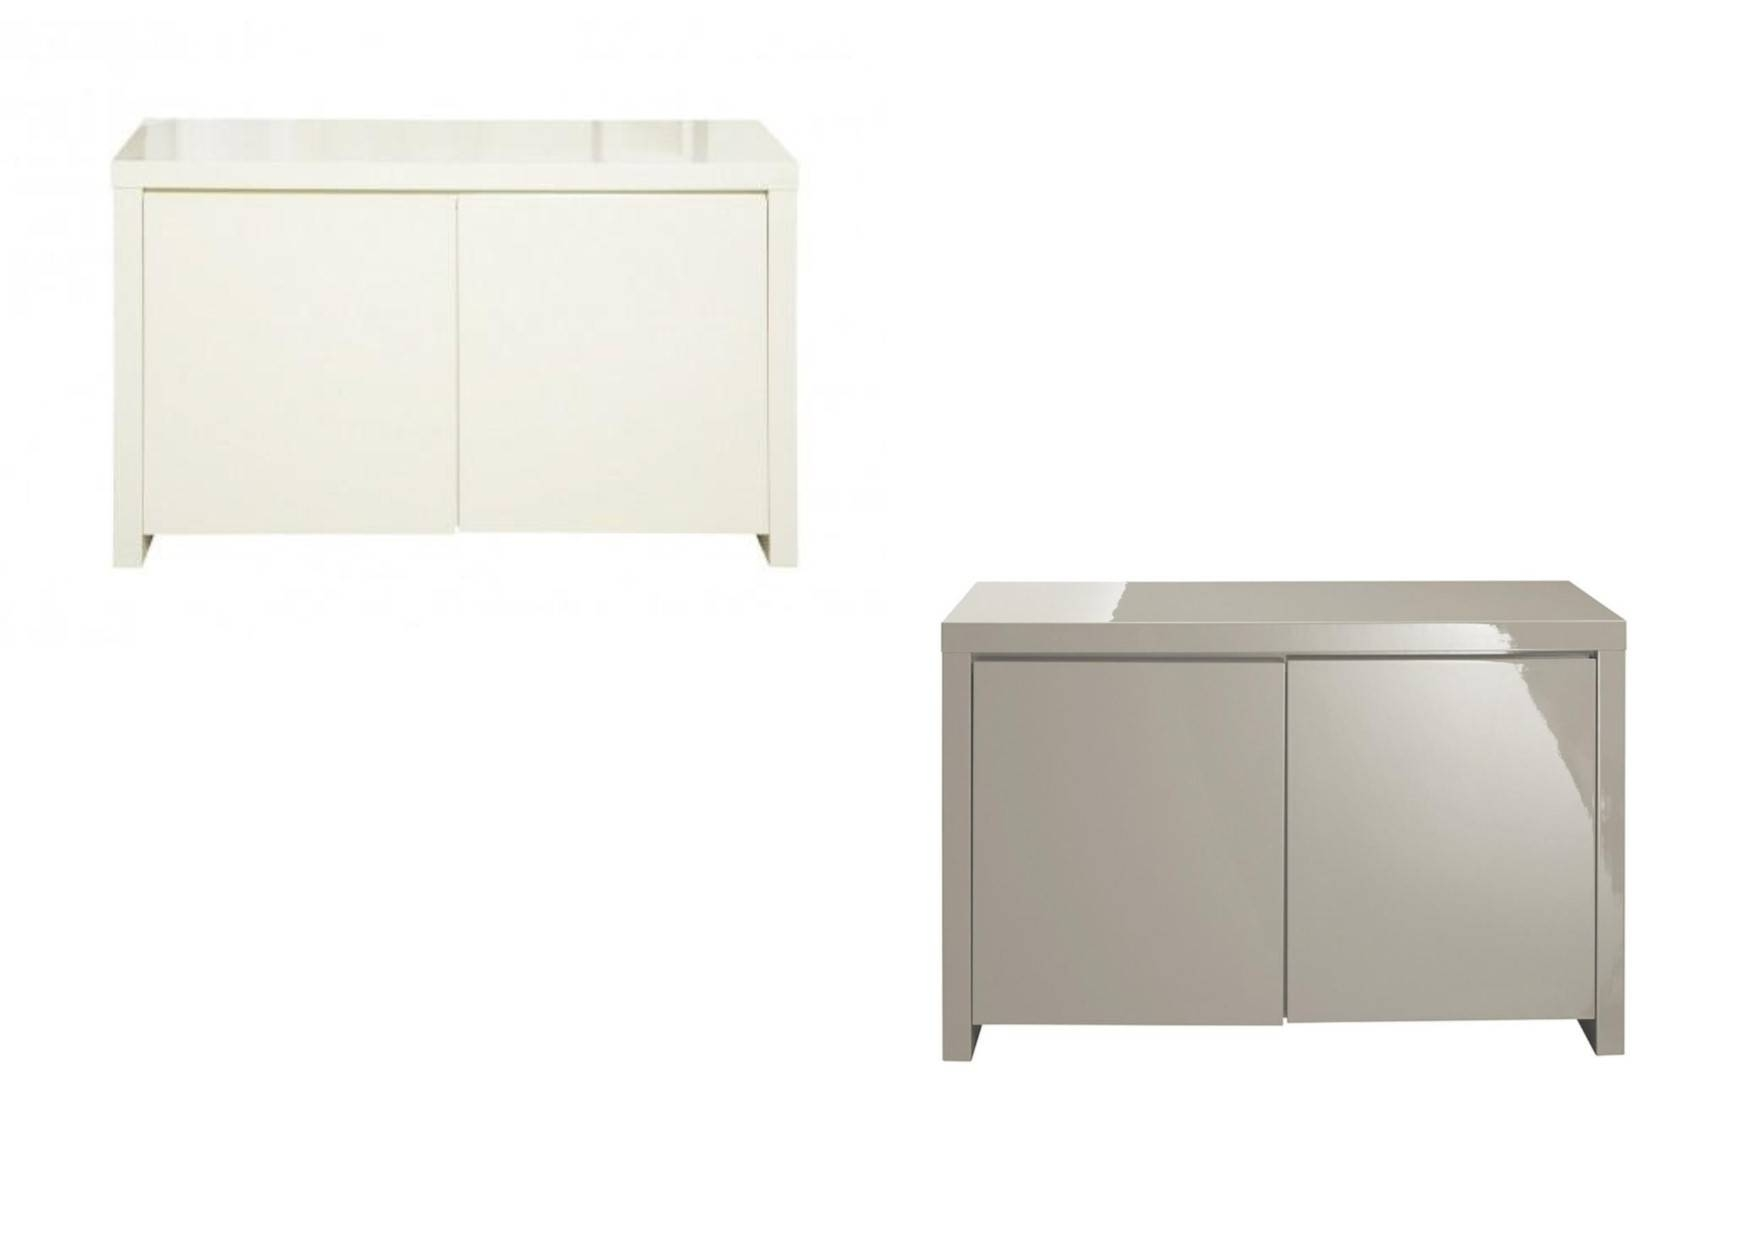 High Gloss Cream Or Stone 2 Door Sideboard for High Gloss Cream Sideboards (Image 6 of 15)